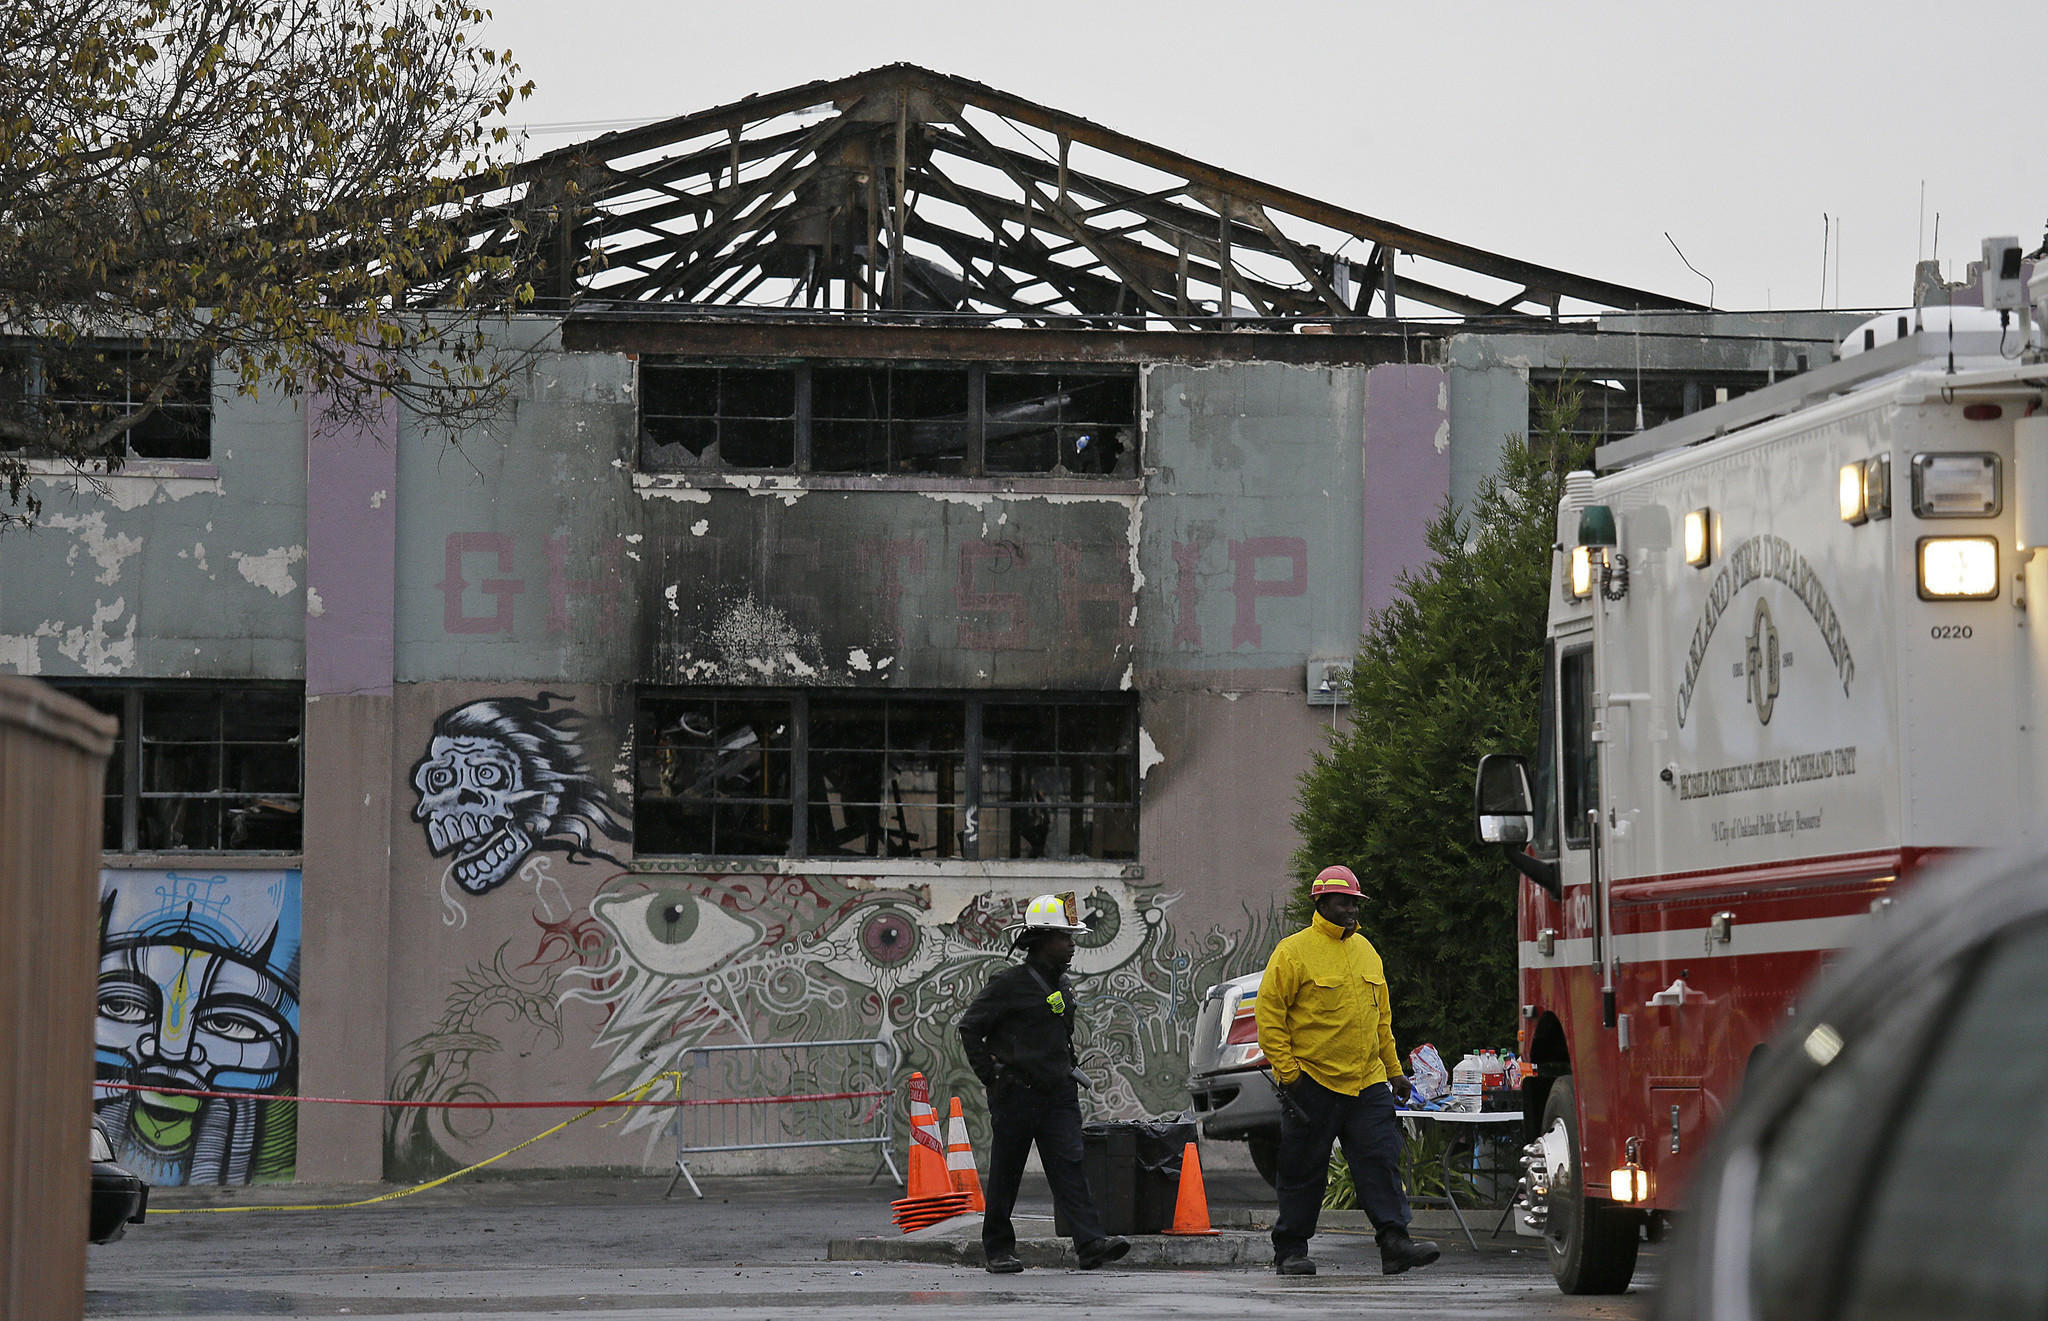 Oakland Warehouse Fire Survivor People Dying Right In